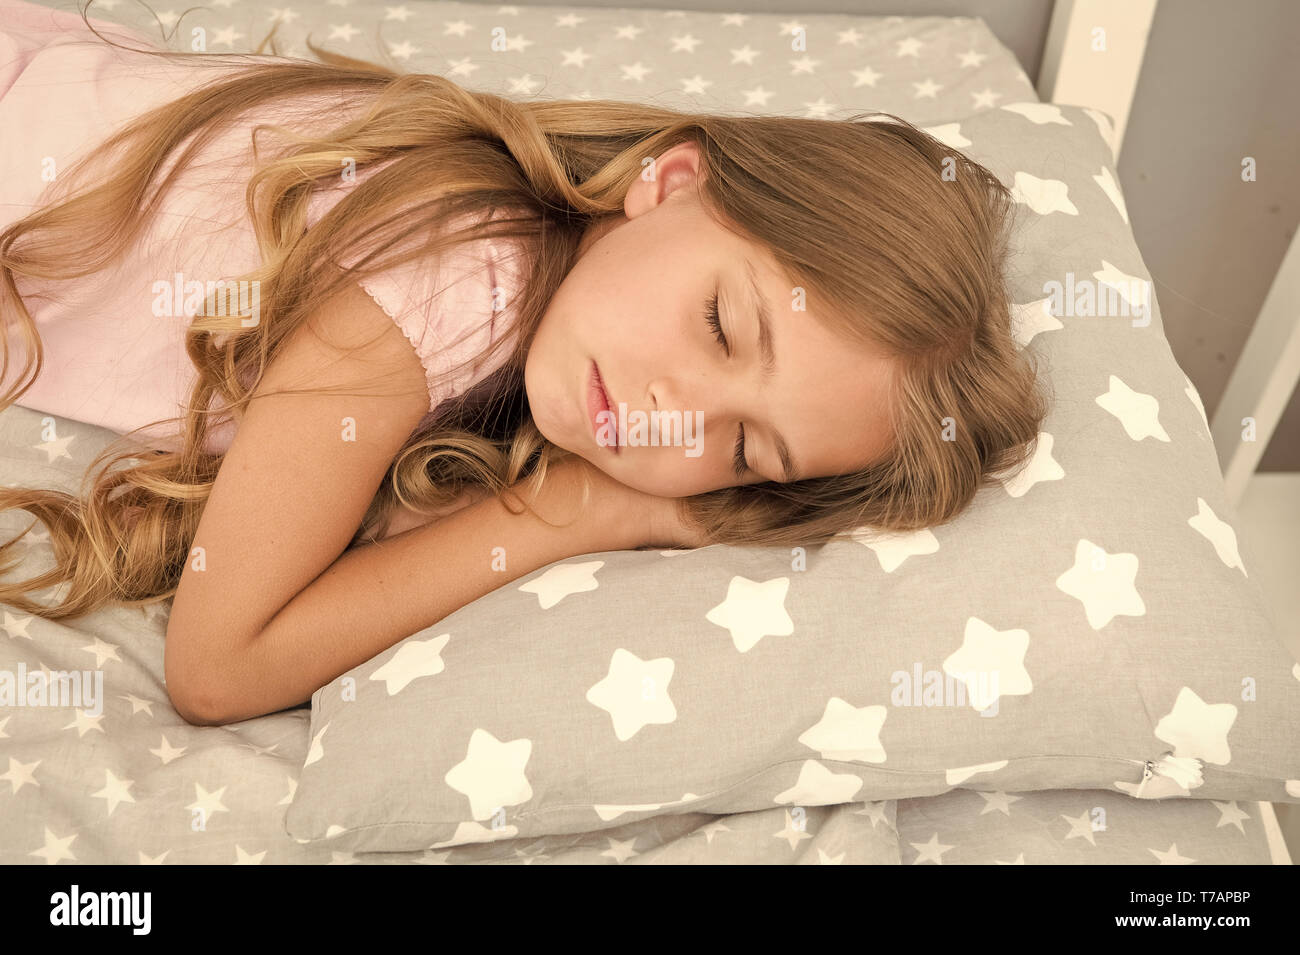 Sweet dreams. Girl child long hair fall asleep close up. Quality of sleep depends on many factors. Choose proper pillow to sleep well. Girl on little pillow bedclothes background. Sleeping beauty. - Stock Image